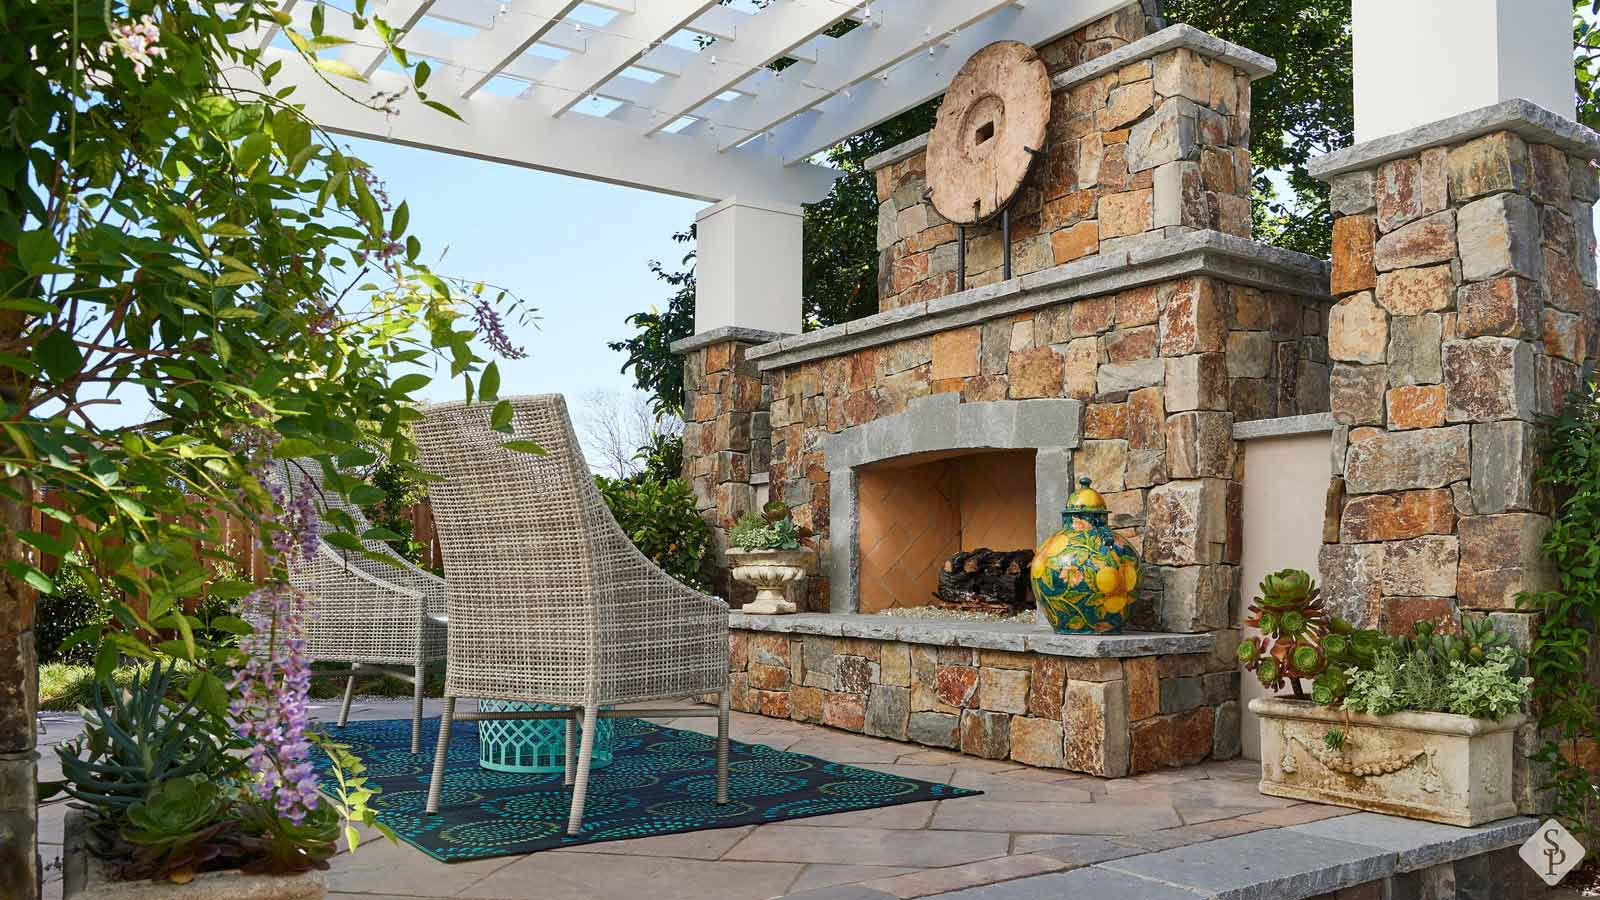 When deciding which outdoor products to include for a remodel, homeowners should truly consider an outdoor fireplace.